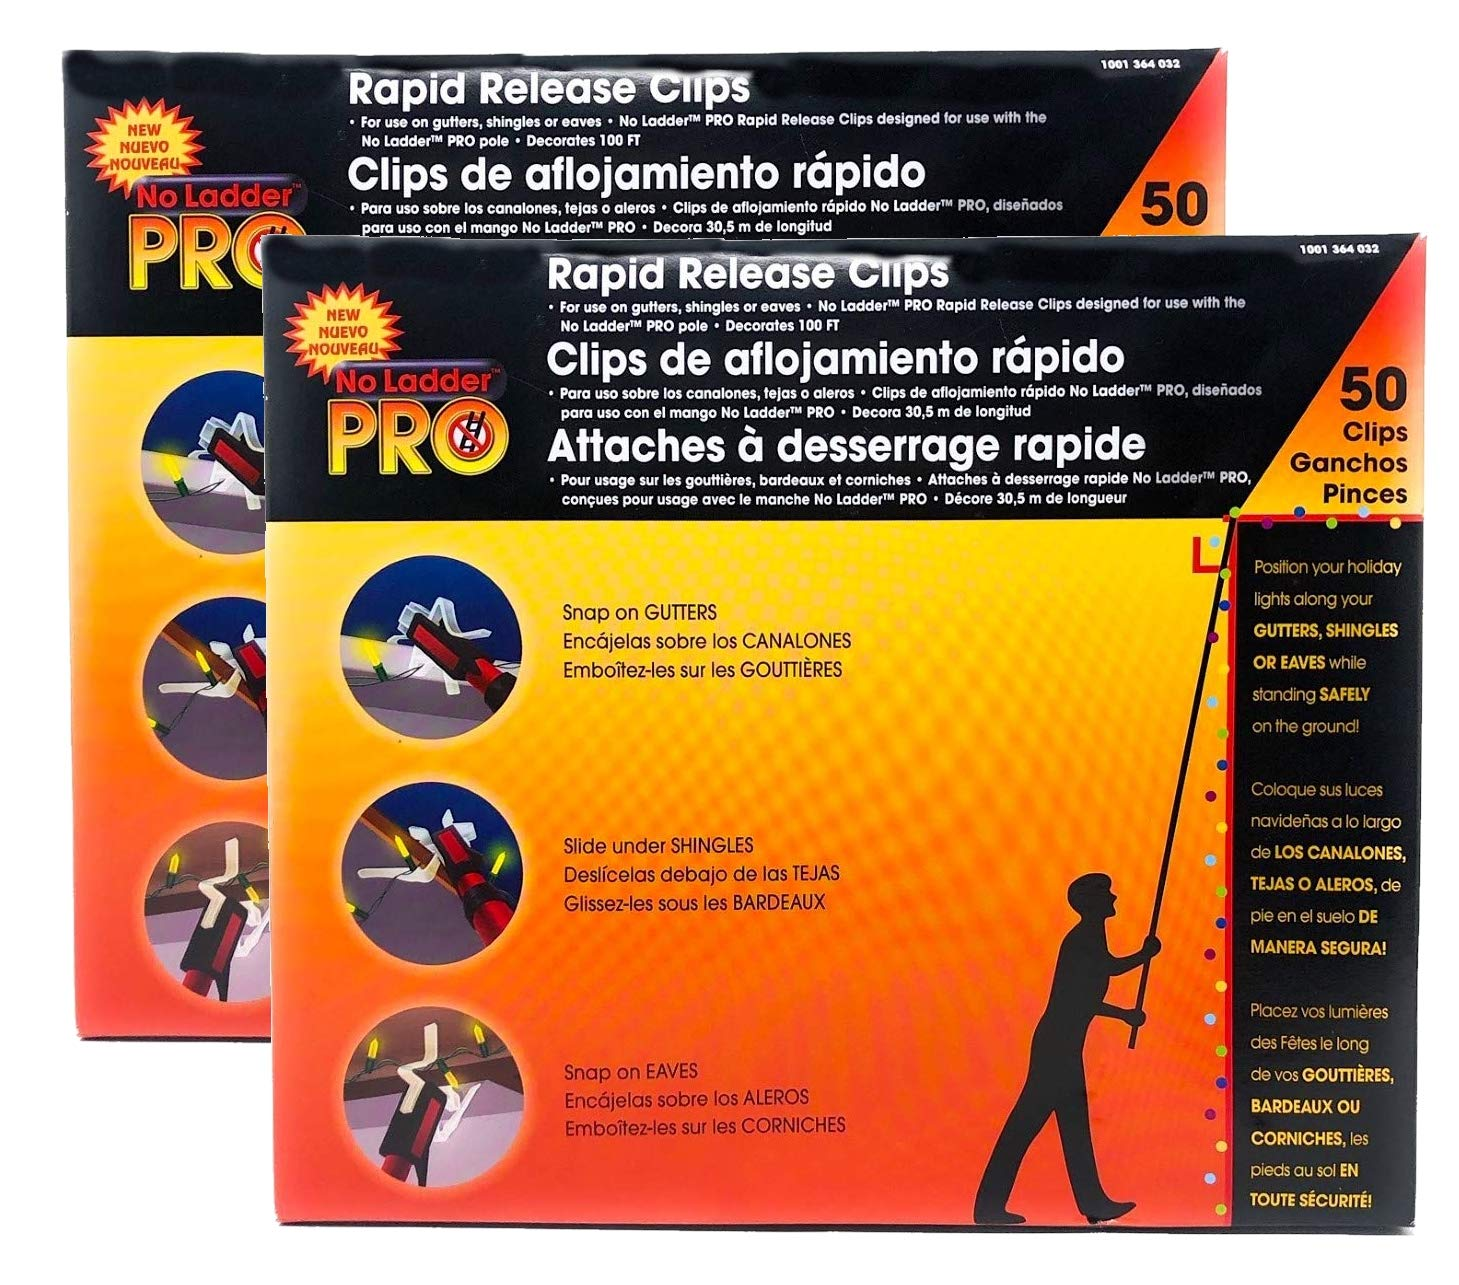 2 Packs of 50 Pro No Ladder Rapid Release Holiday Lights Gutter Clips by Pro Ladder